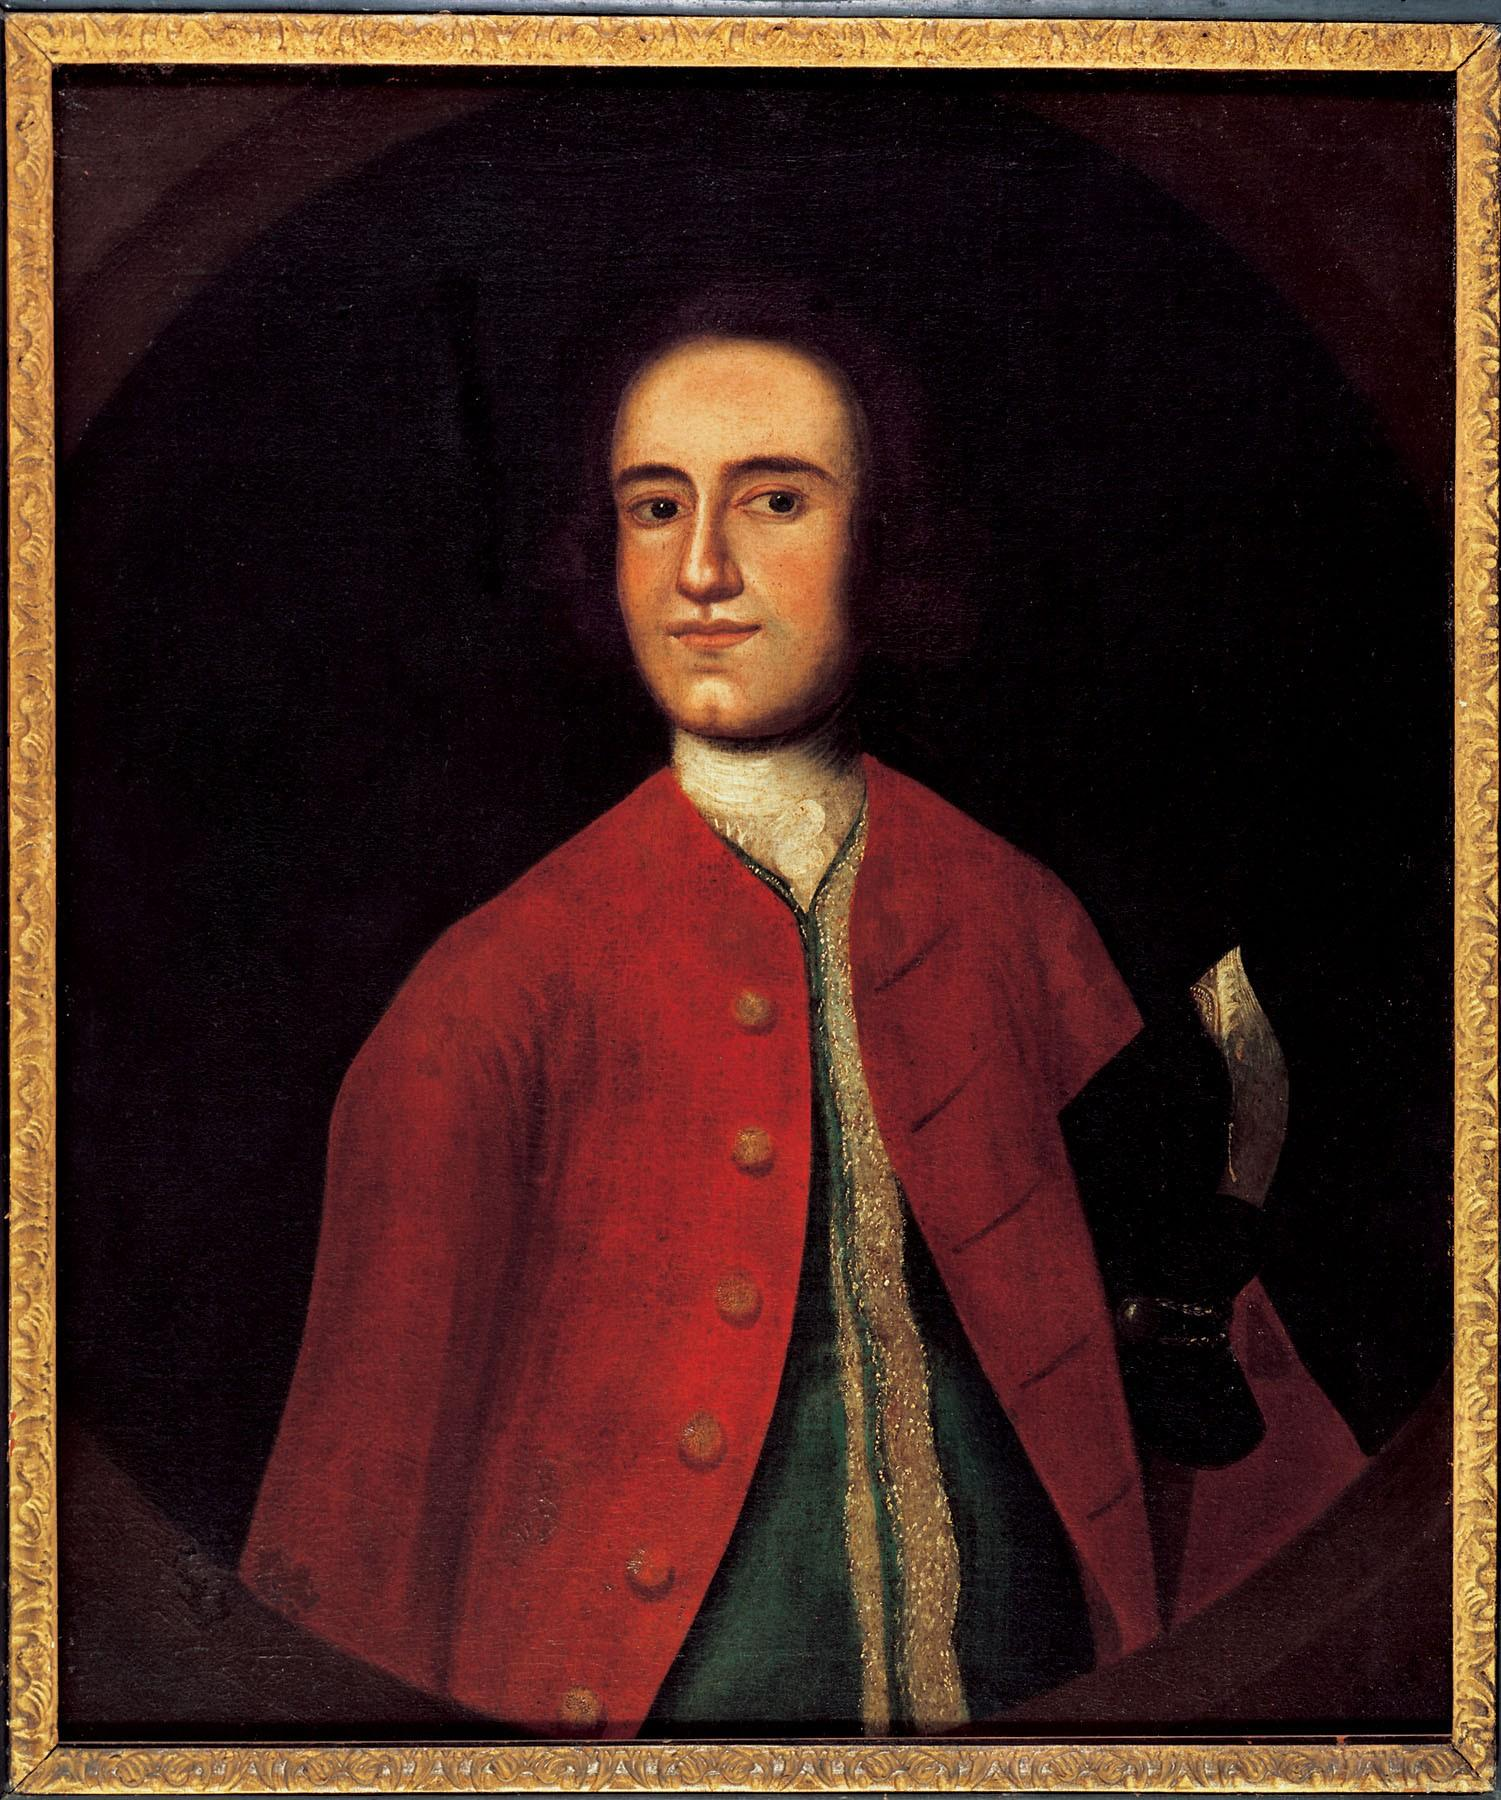 Lawrence Washington, attributed to Gustavus Hesselius, ca. 1738 (Mount Vernon Ladies' Association)